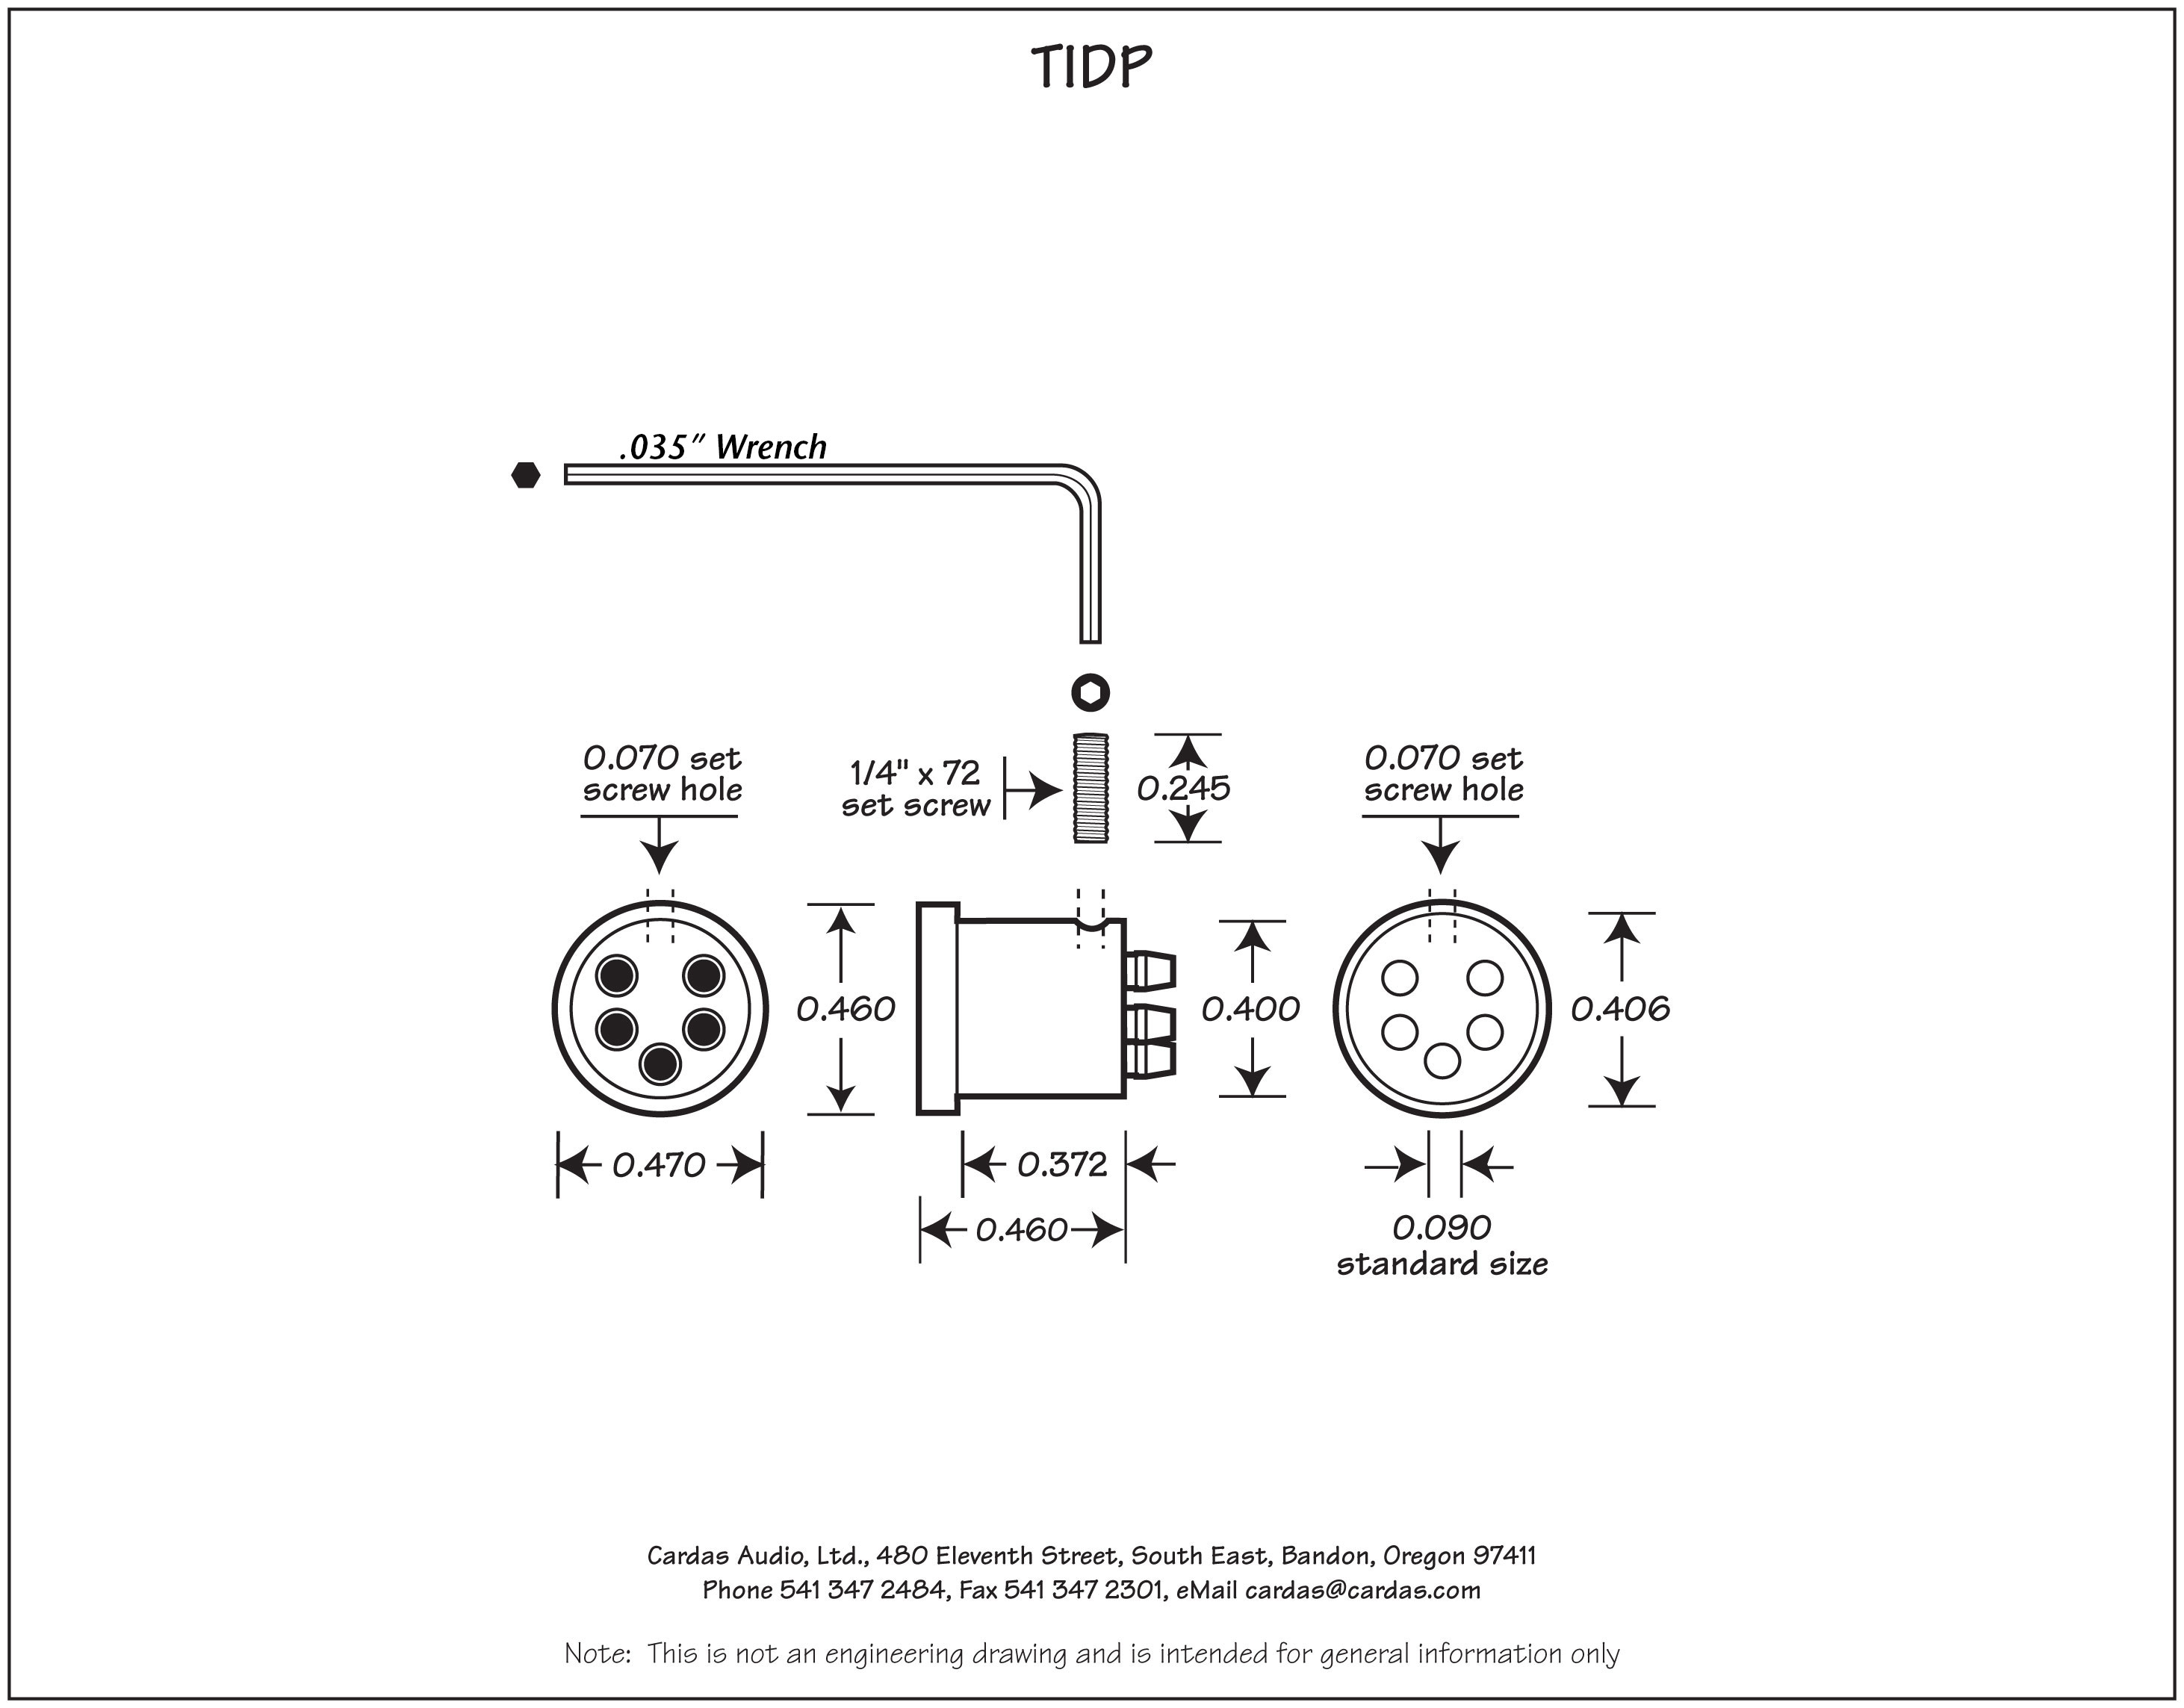 tidp_drawing cardas tidp female 5 pin din plug hifi collective 5 pin din to phono wiring diagram at crackthecode.co